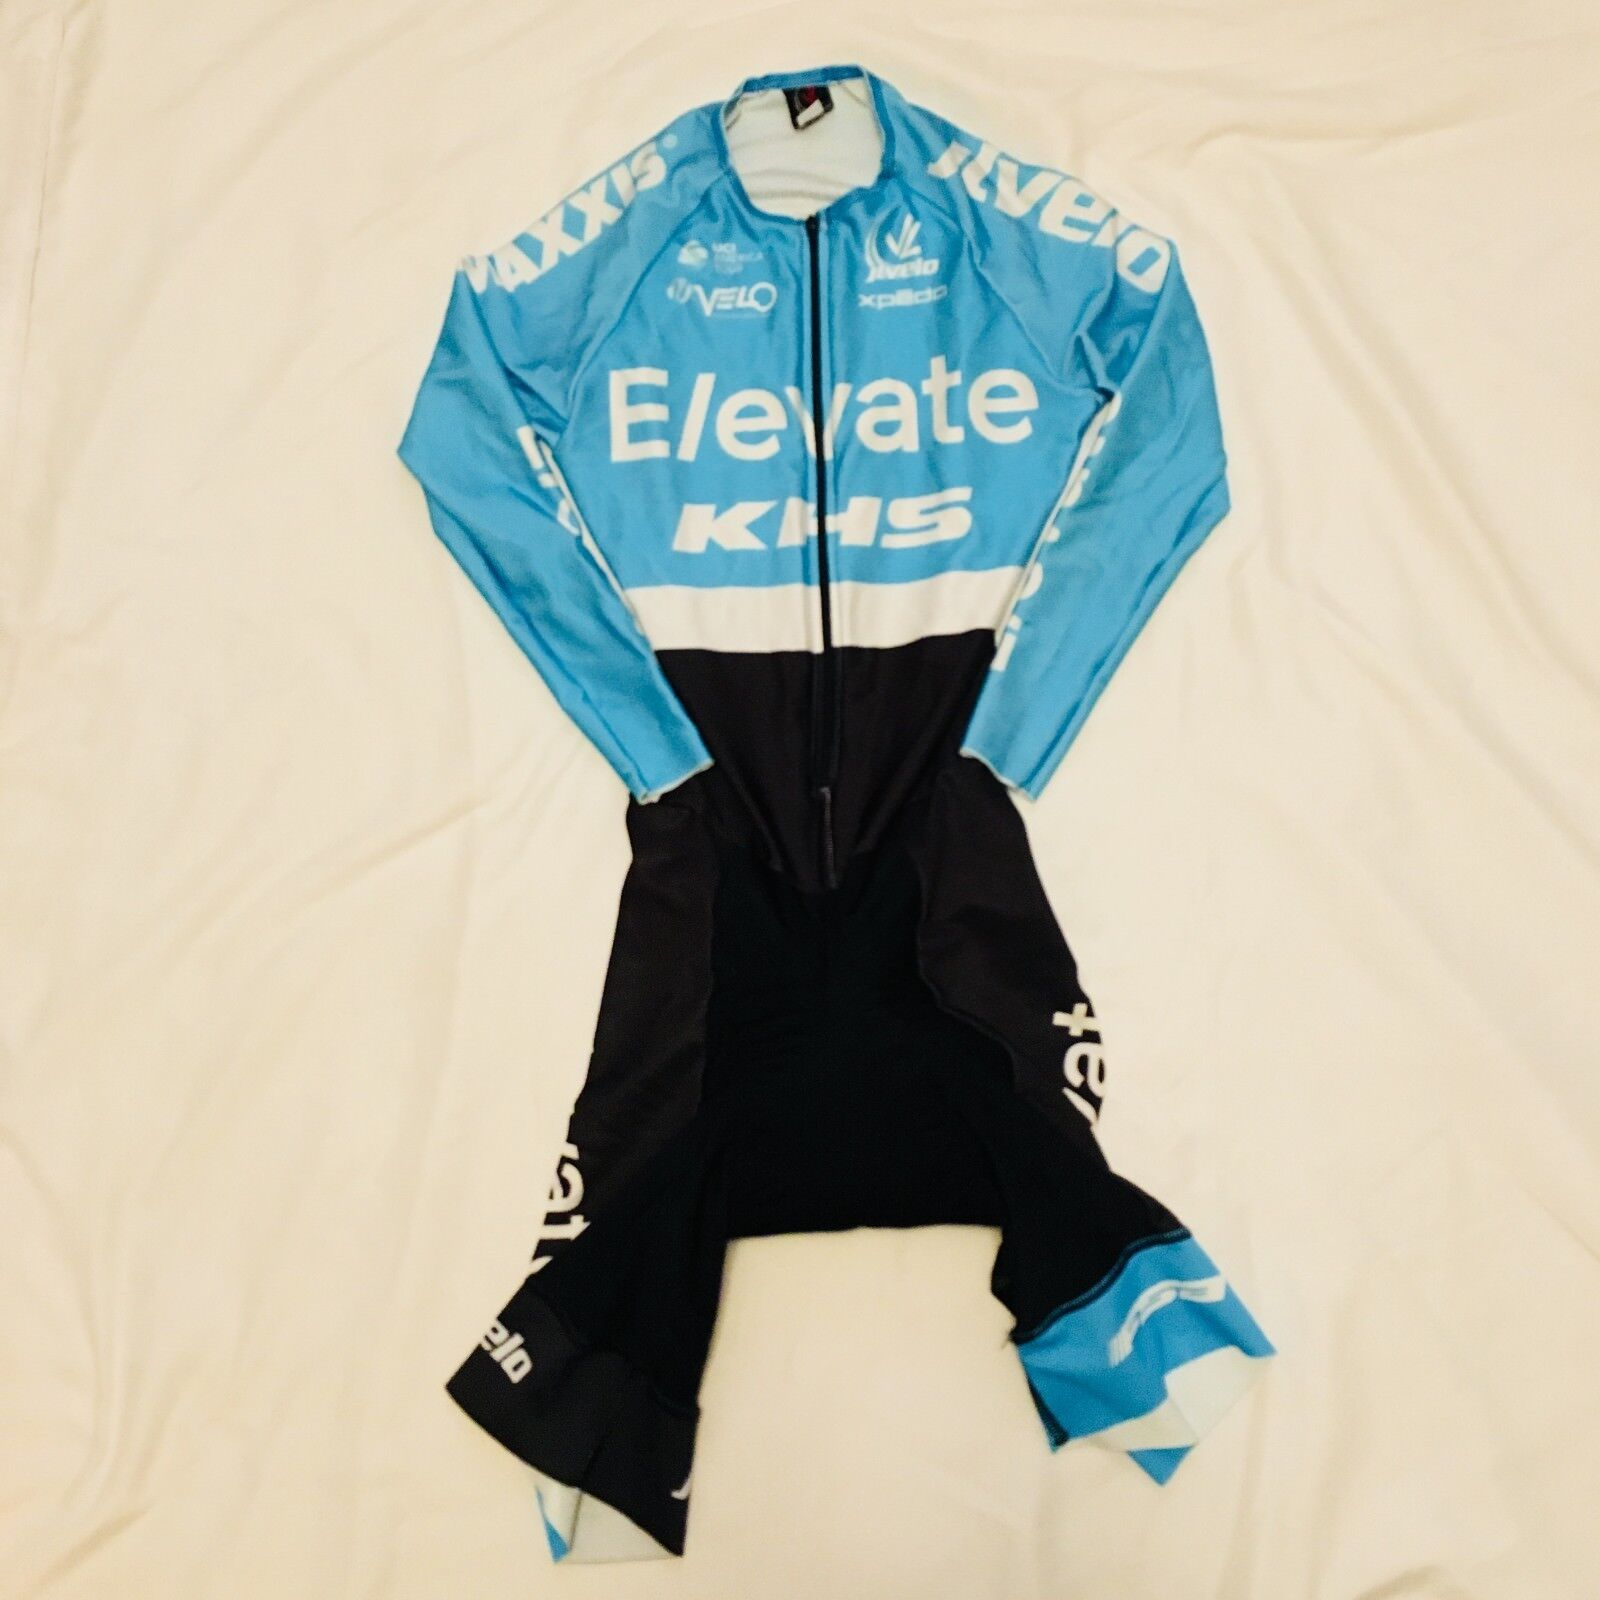 Men's 2017 JL Velo KHS Elevate Pro Cycling LS Skinsuit, Light bluee, Size 2XS EUC